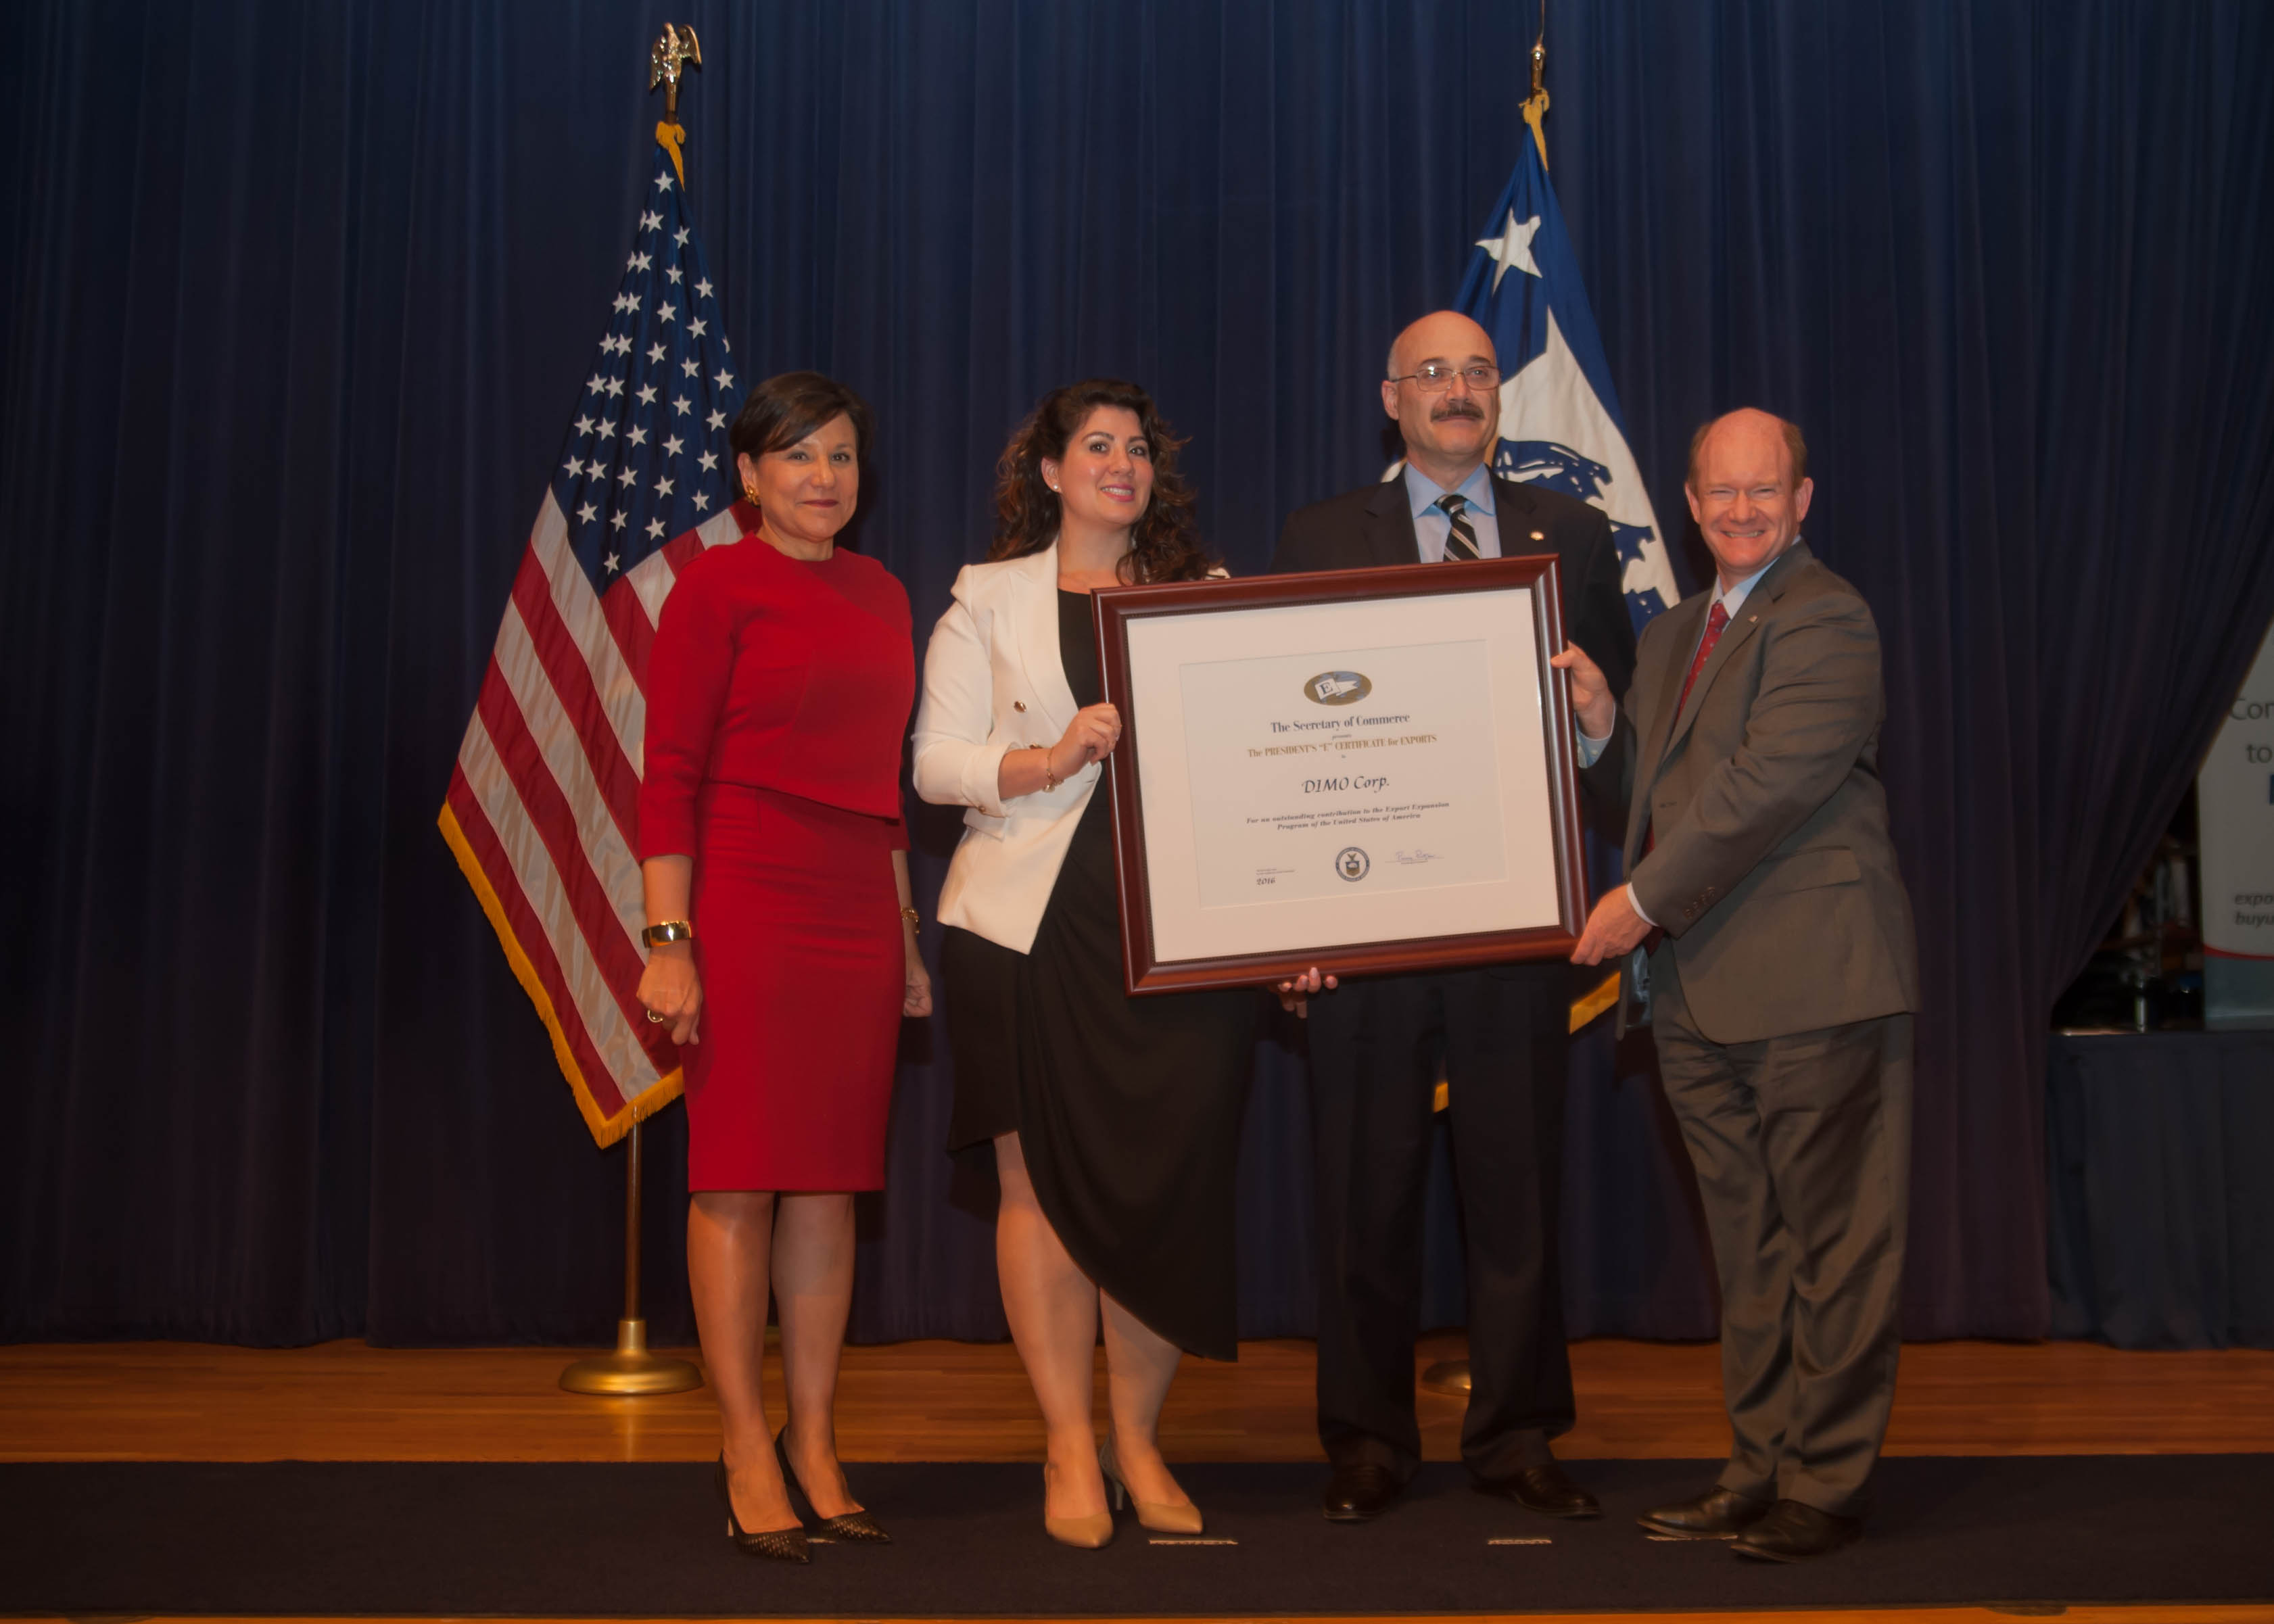 DIMO Corp honored by U.S. Secretary of Commerce for export achievements